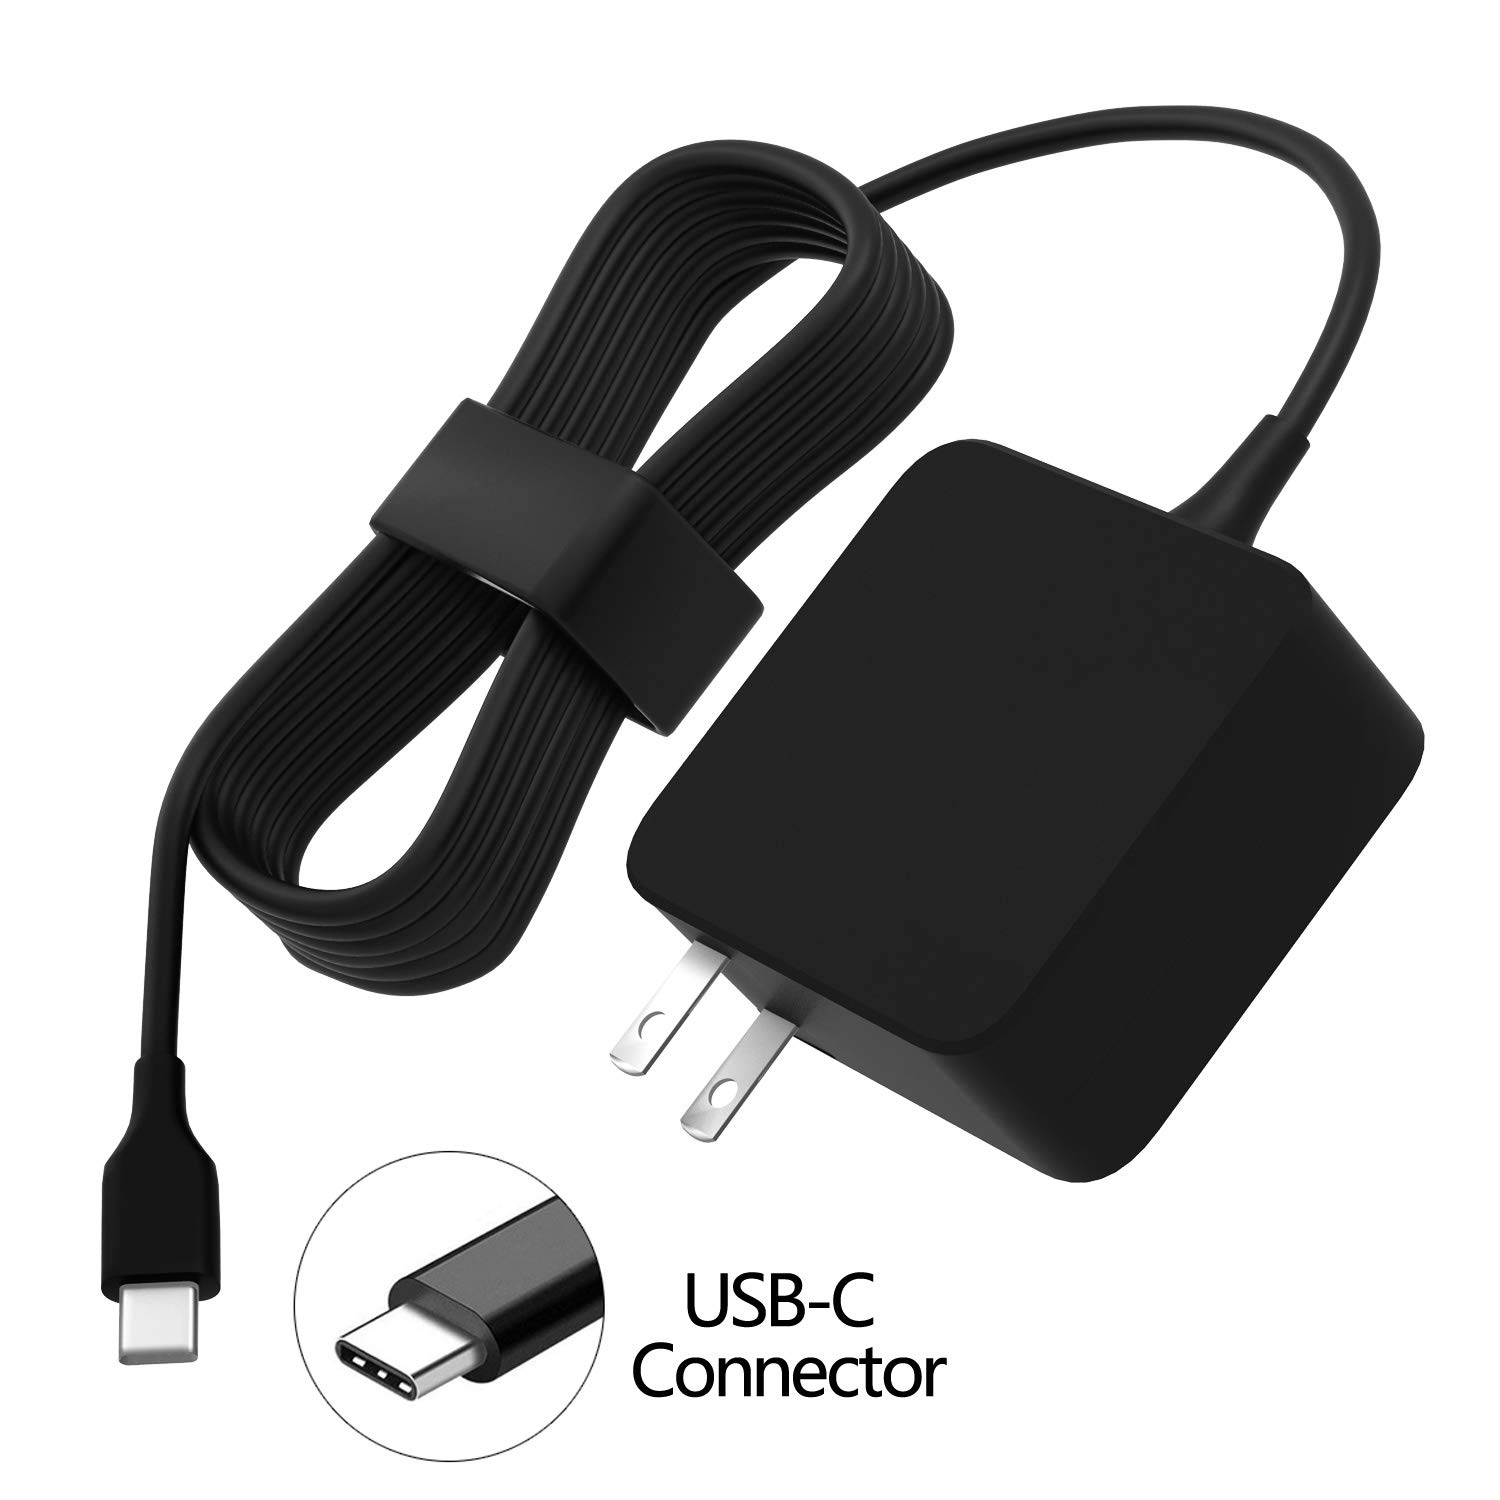 Type C USB Charger Fit for HP Chromebook 14 14A G5 14-ca061dx 14-ca020nr 14-ca060nr 14-ca043cl 14-ca052wm 14-ca051wm X360 11A 11 G6 EE 11 G1 ...